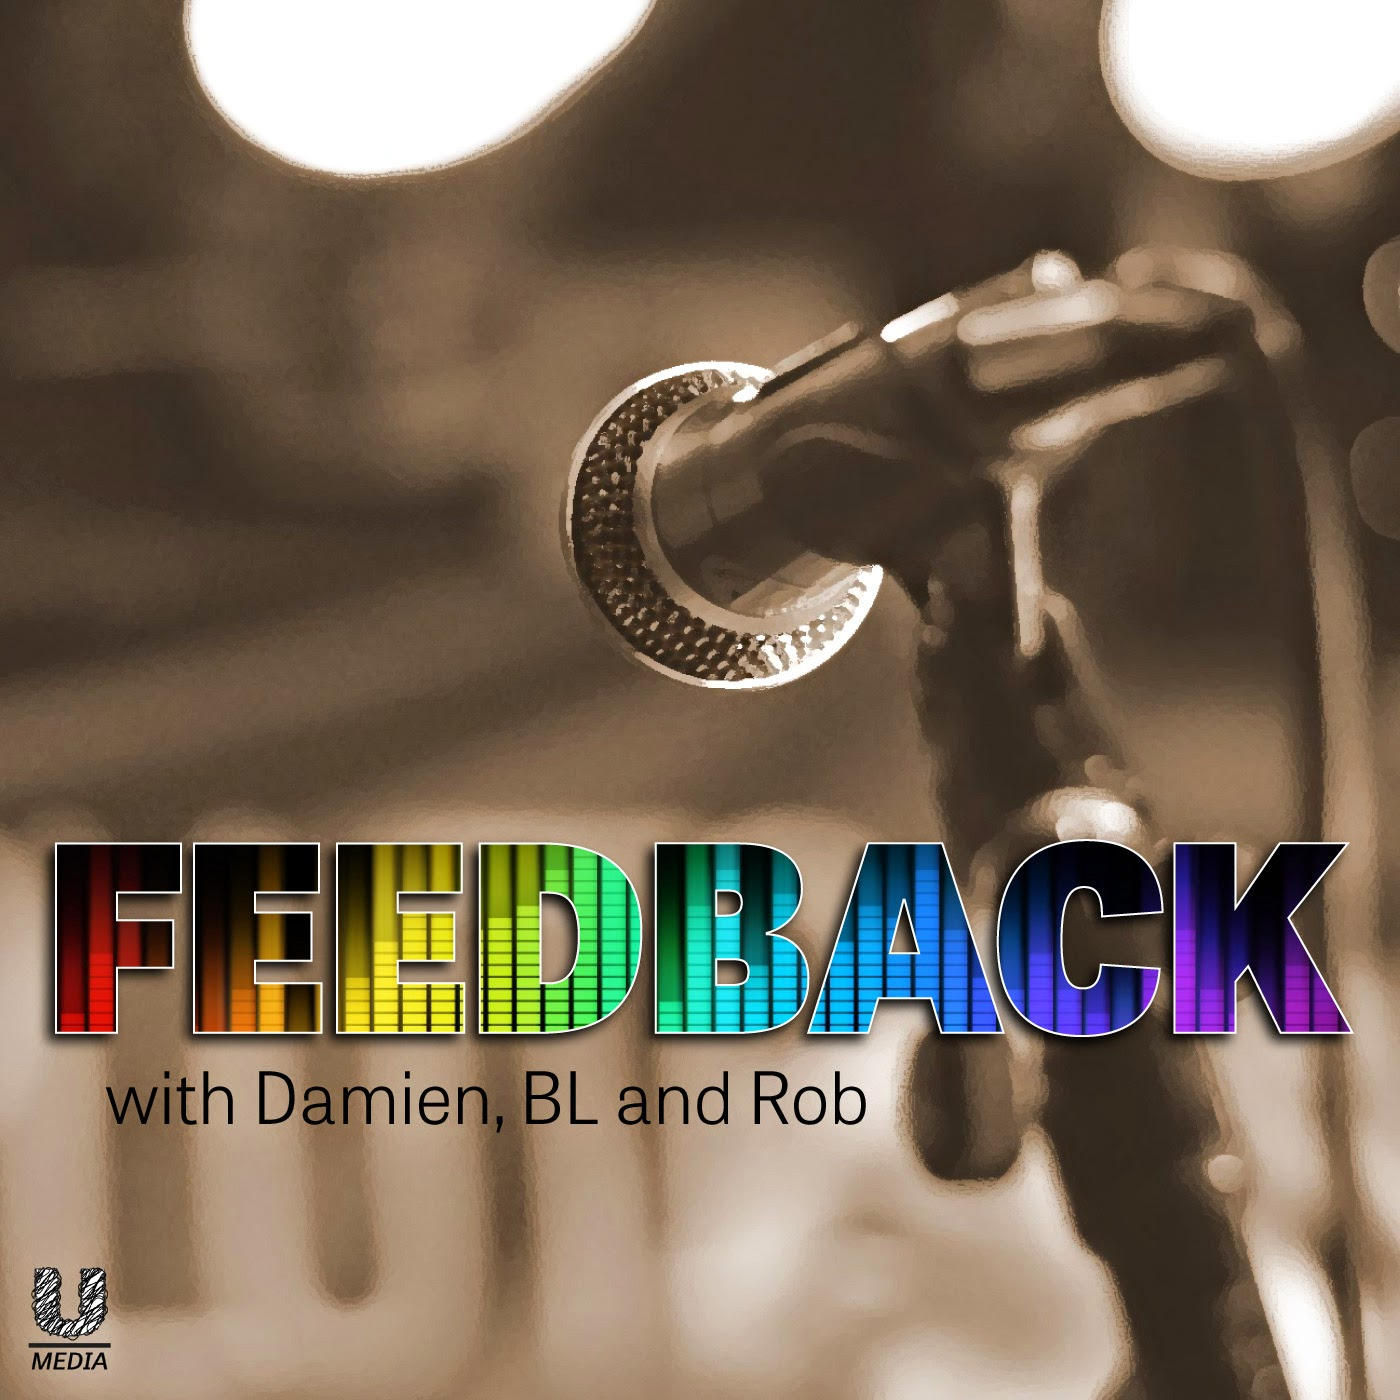 Feedback - a music podcast